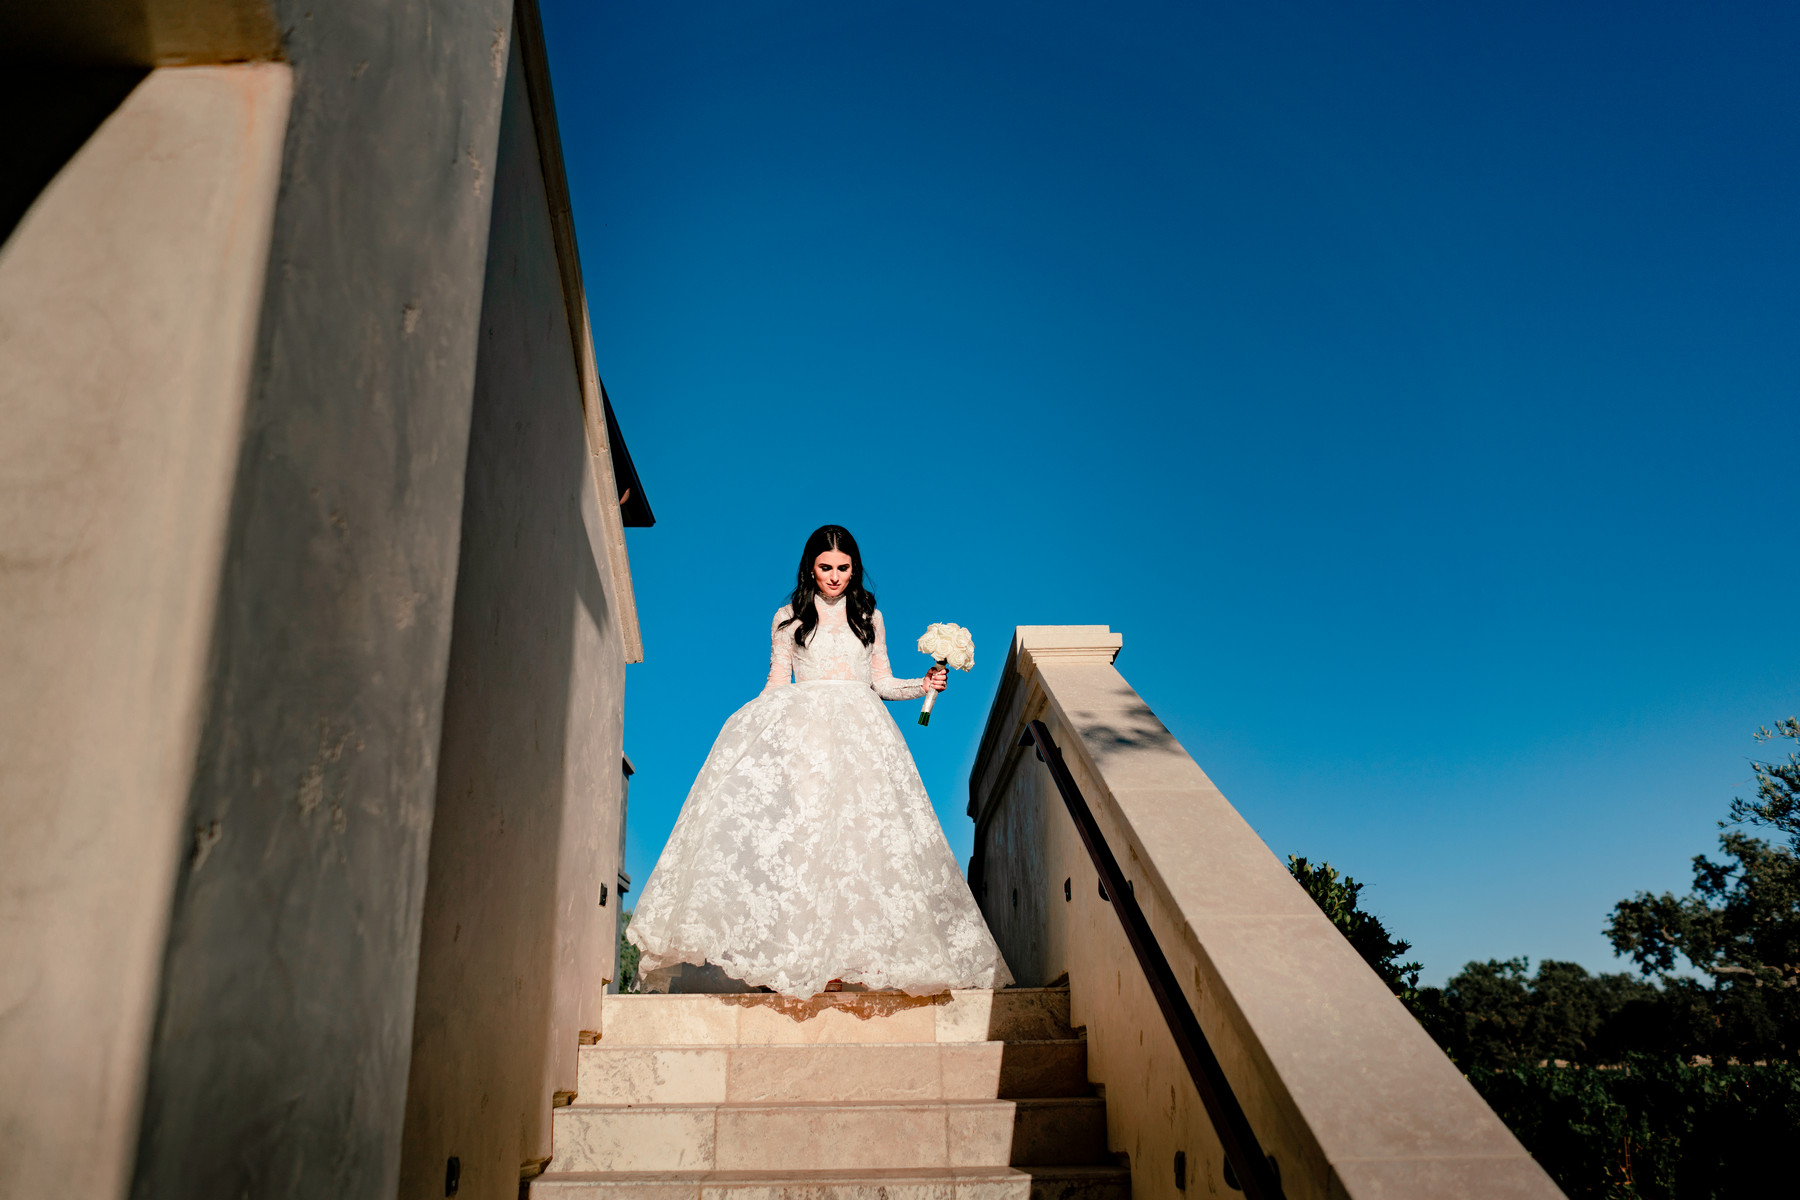 Bride descending stairs in long sleeve romantic lace ballgown - photo by John and Joseph - Los Angeles